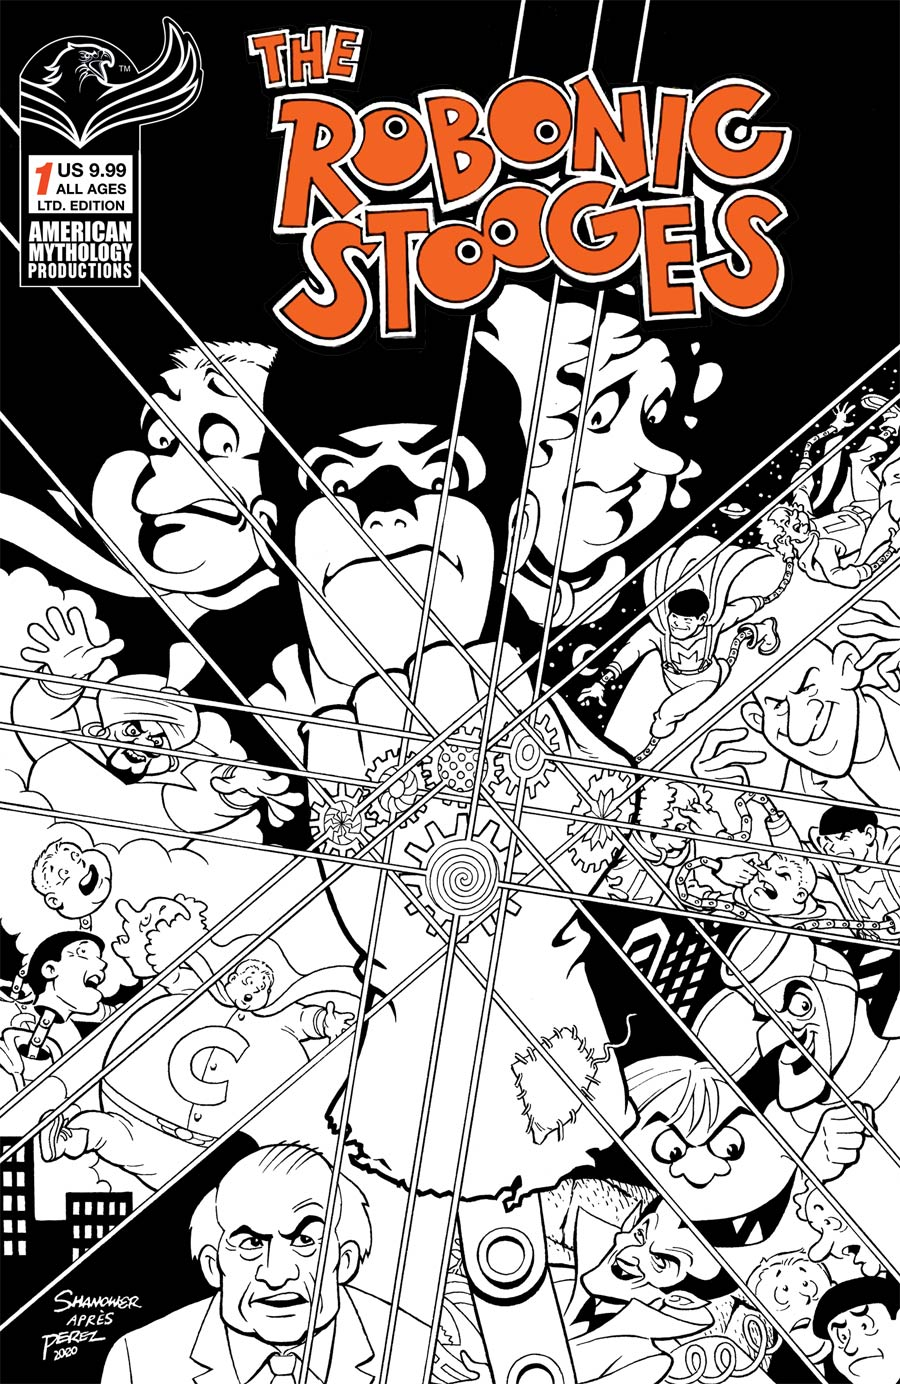 Robonic Stooges #1 Return Cover C Limited Edition Eric Shanower Black & White Cover